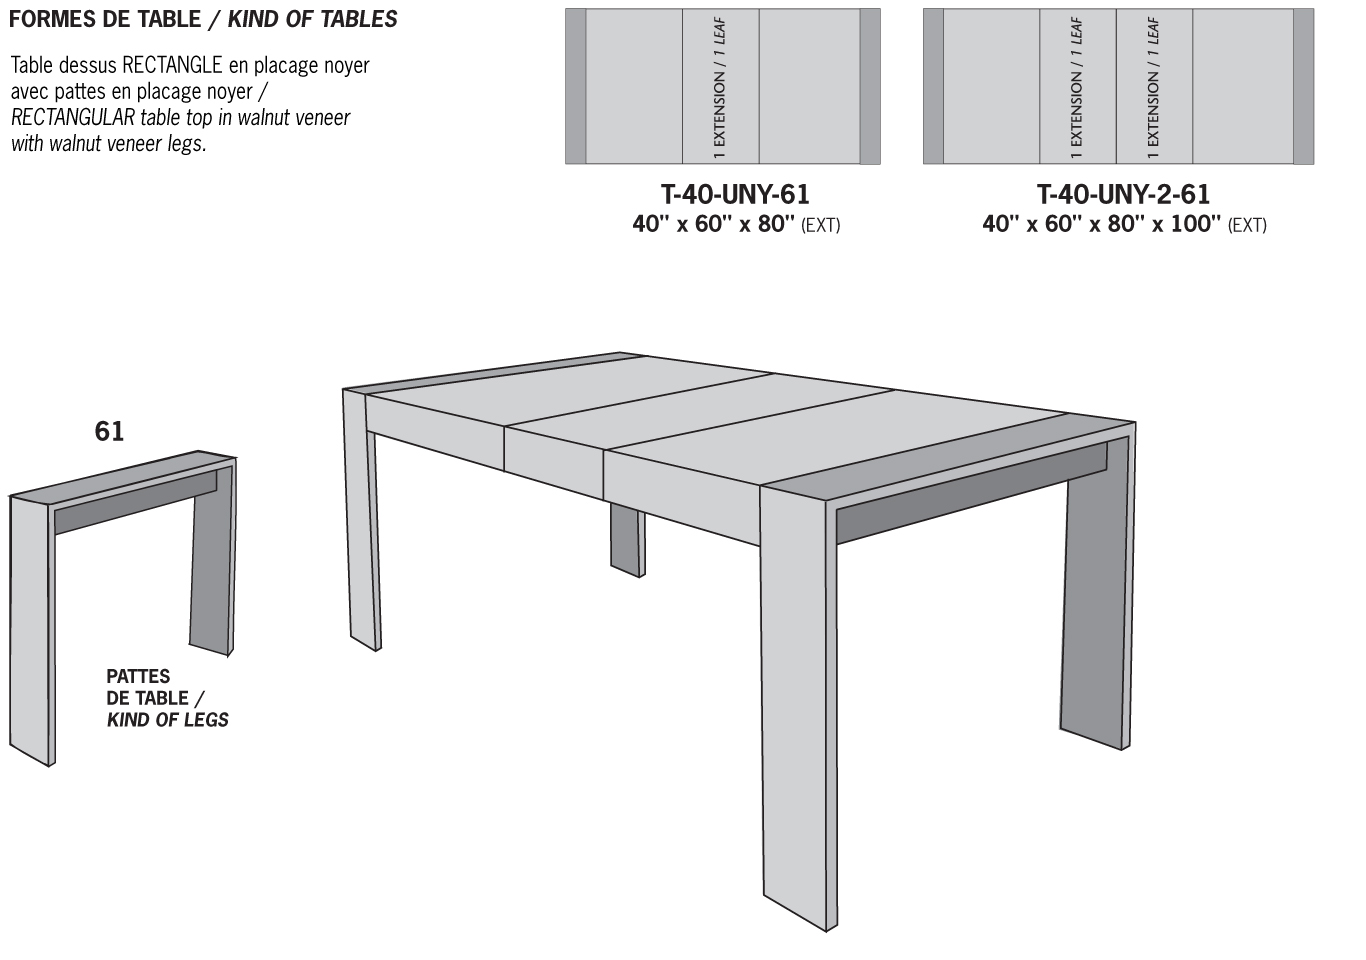 Viebois  Catalog  Dining tables  T40UNY61